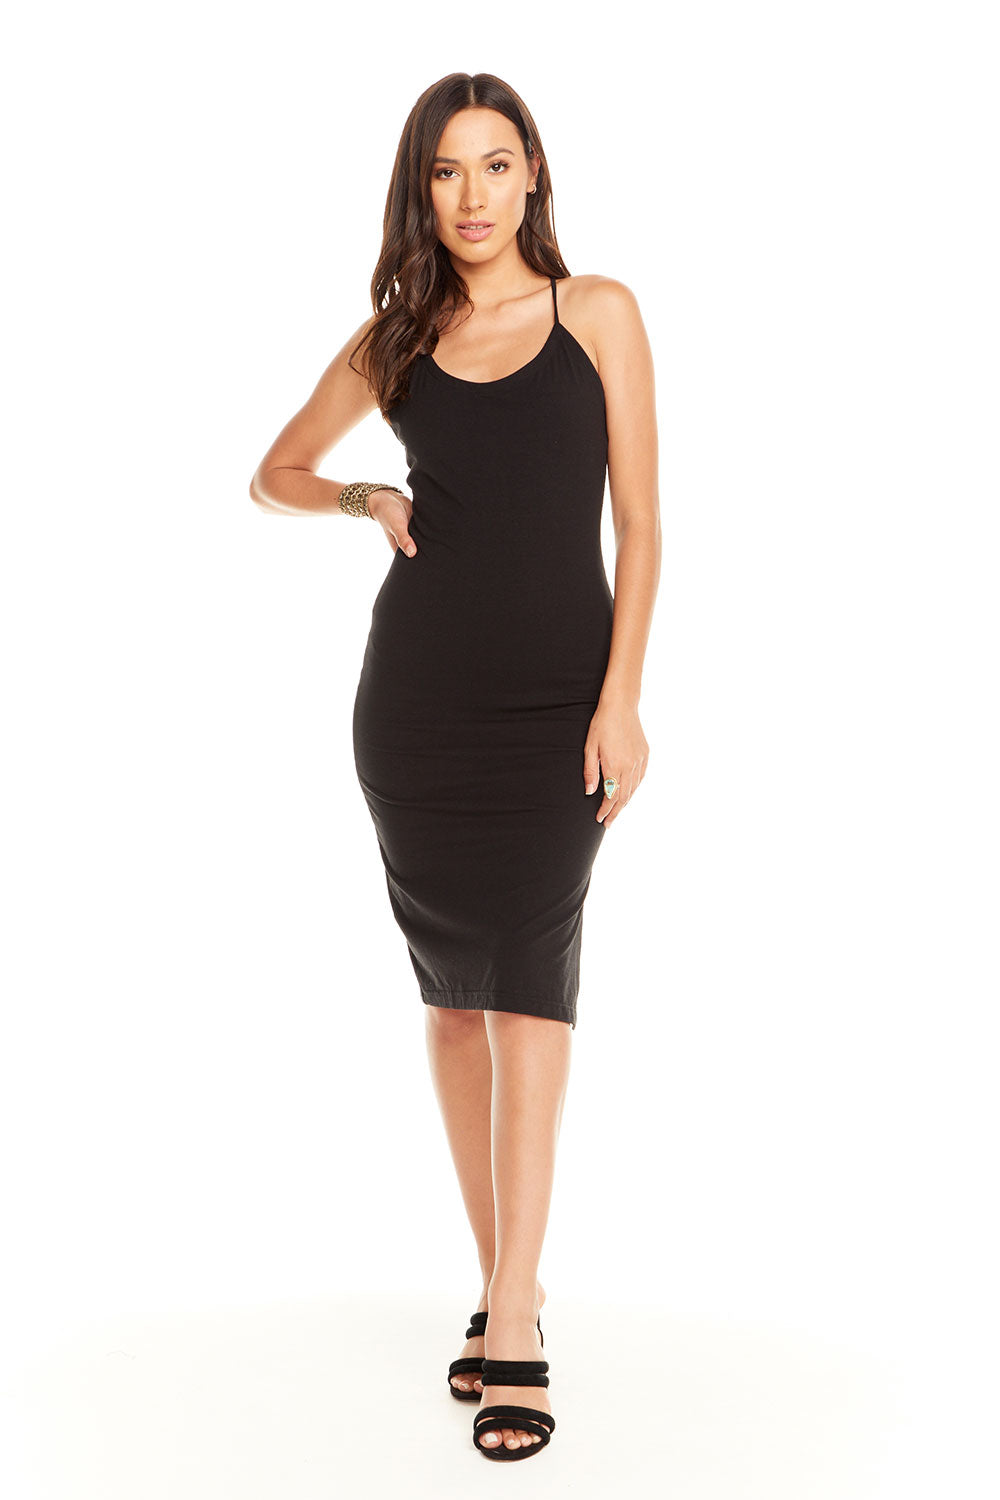 Quadrablend Strappy Back Bodycon Cami Dress W/ Slit, WOMENS, chaserbrand.com,chaser clothing,chaser apparel,chaser los angeles